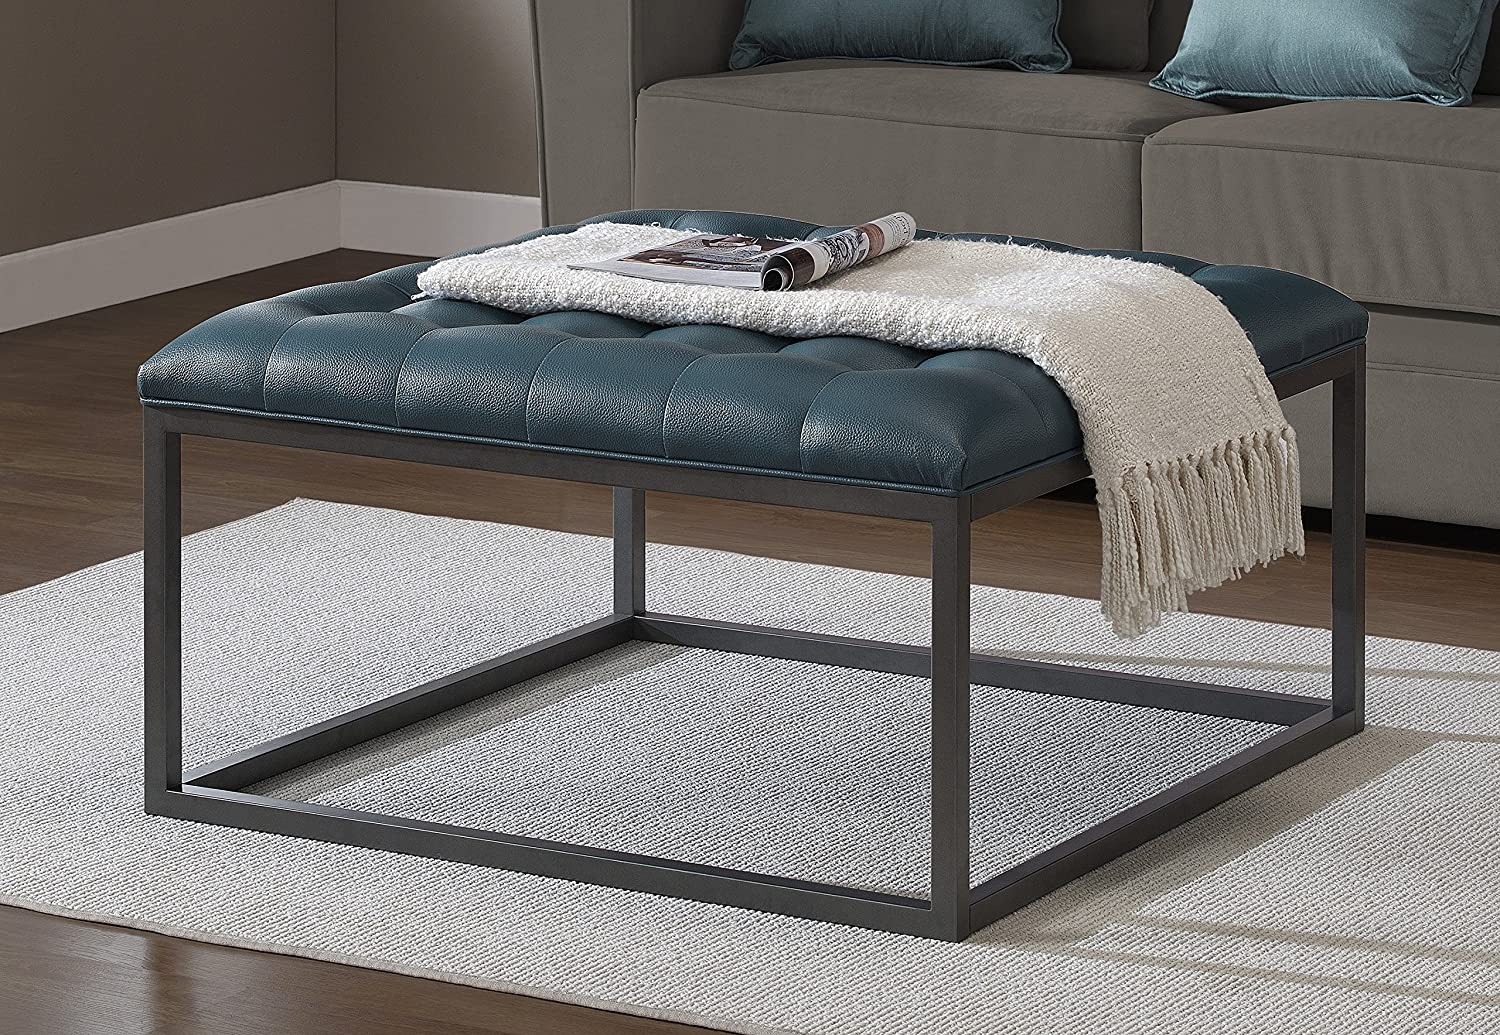 - Amazon.com: Coffee Table Ottoman Modern Button Tufted Leather